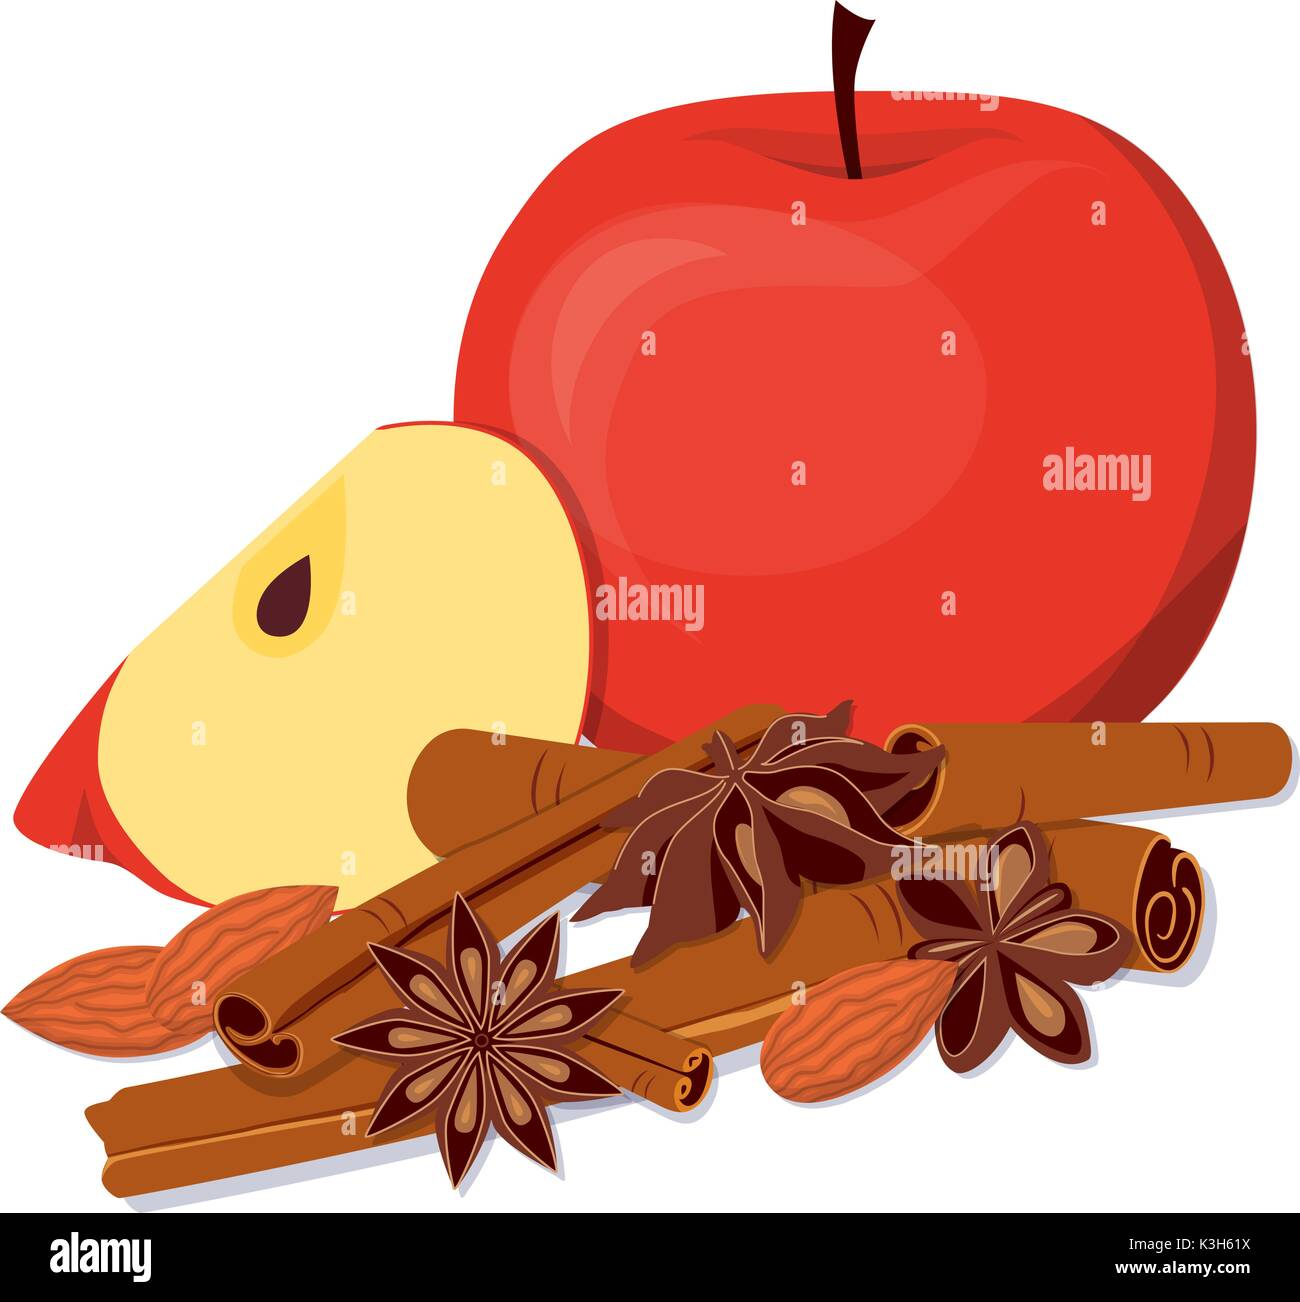 Apple Cinnamon Illustration High Resolution Stock Photography And Images Alamy